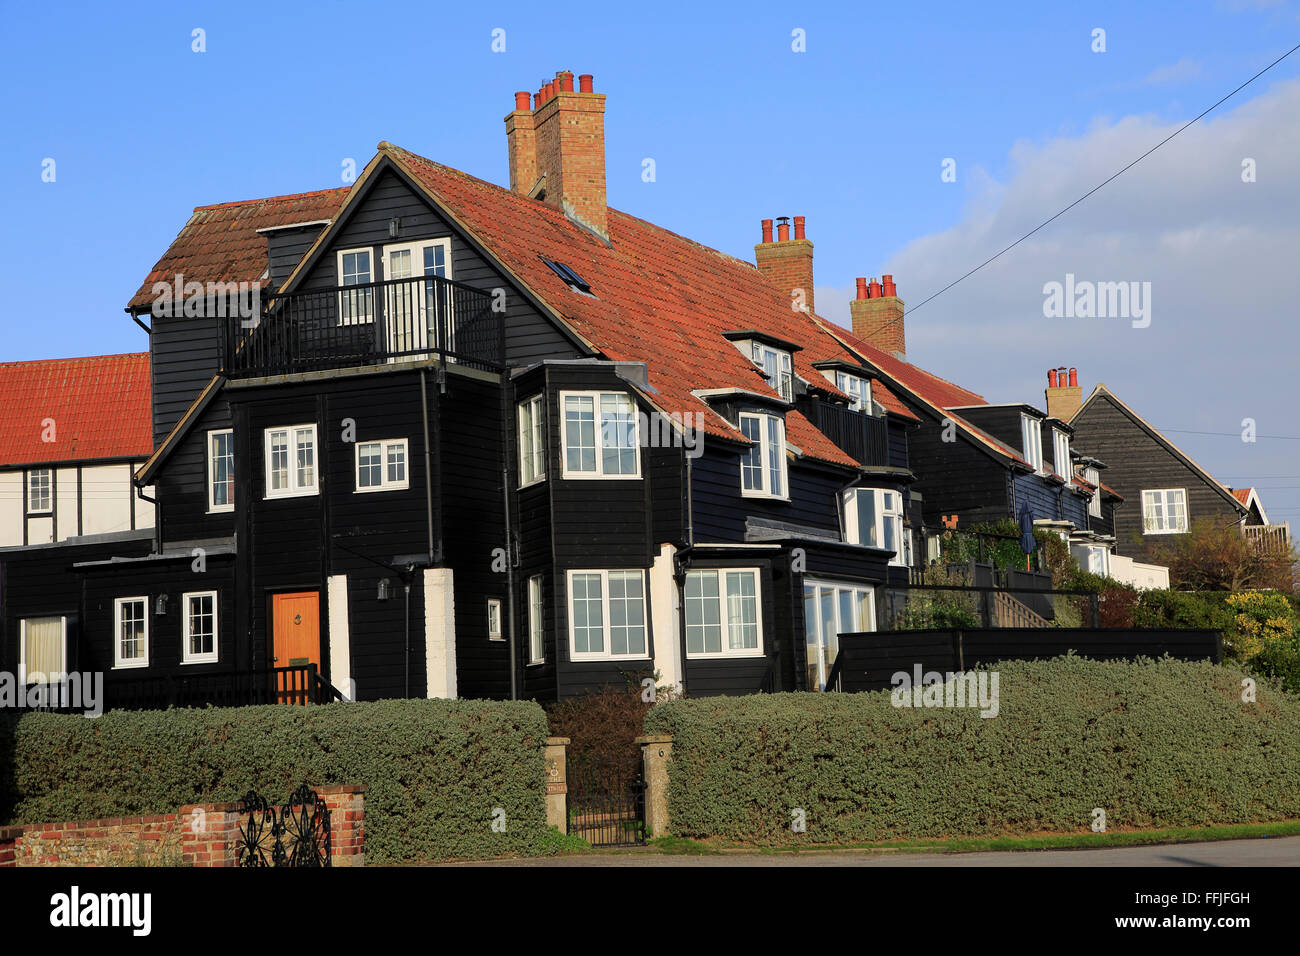 Large black clapboard house at Thorpeness, Suffolk, England, UK Stock Photo